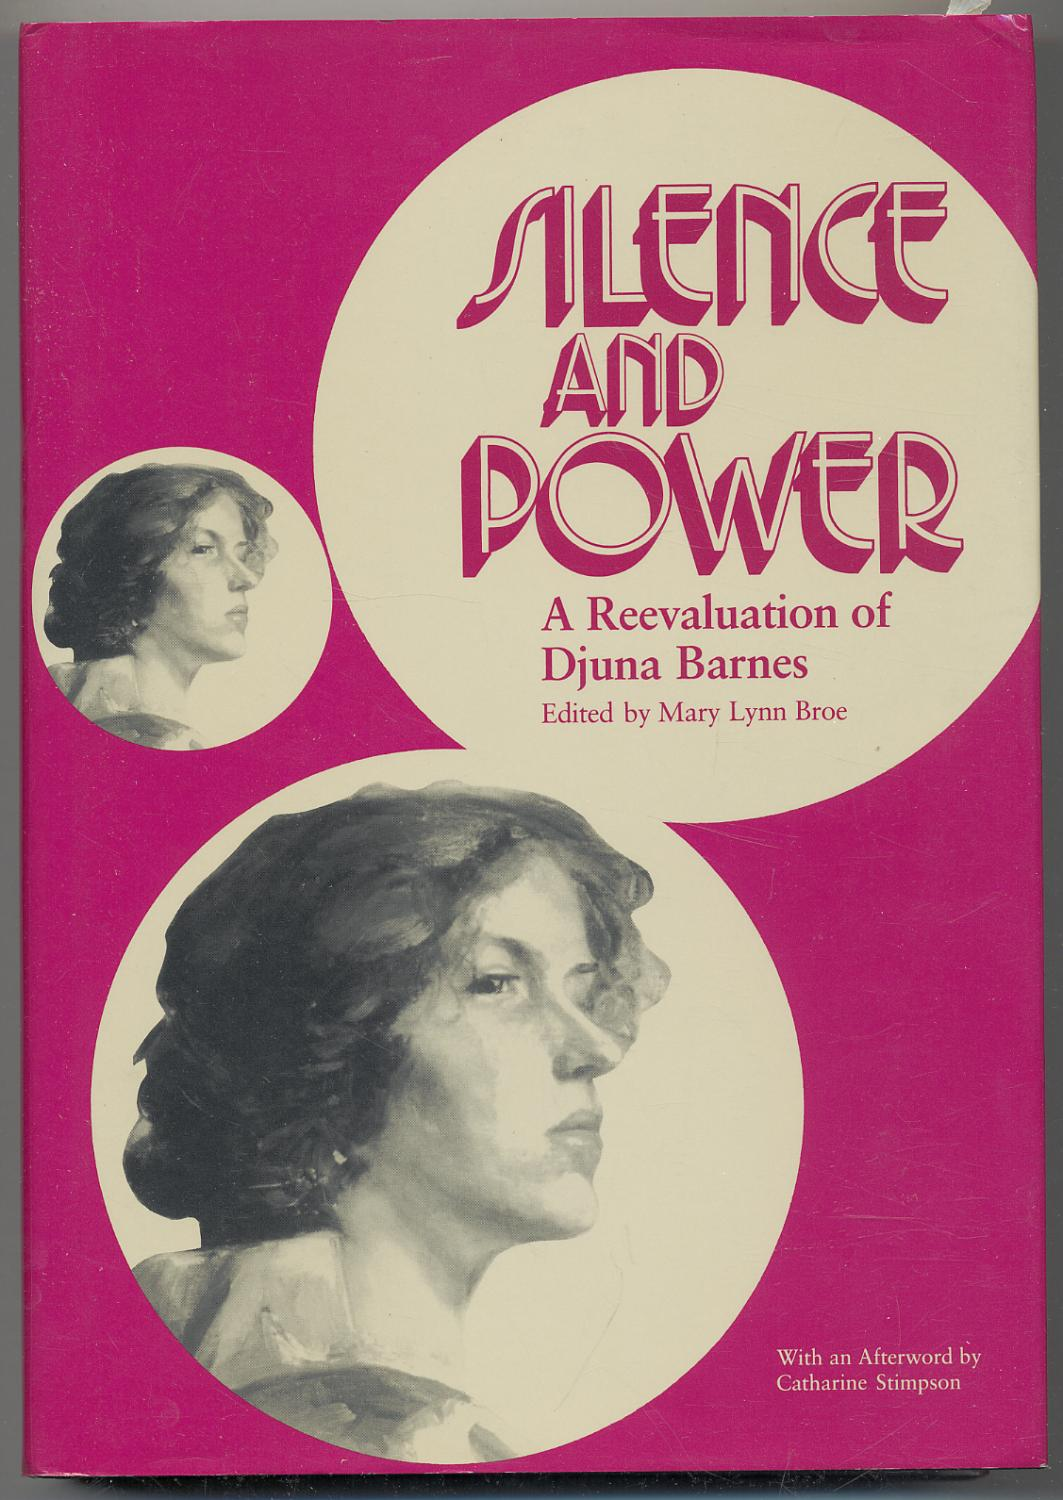 Silence and Power: A Reevaluation of Djuna Barnes - BROE, Mary Lynn, edited by